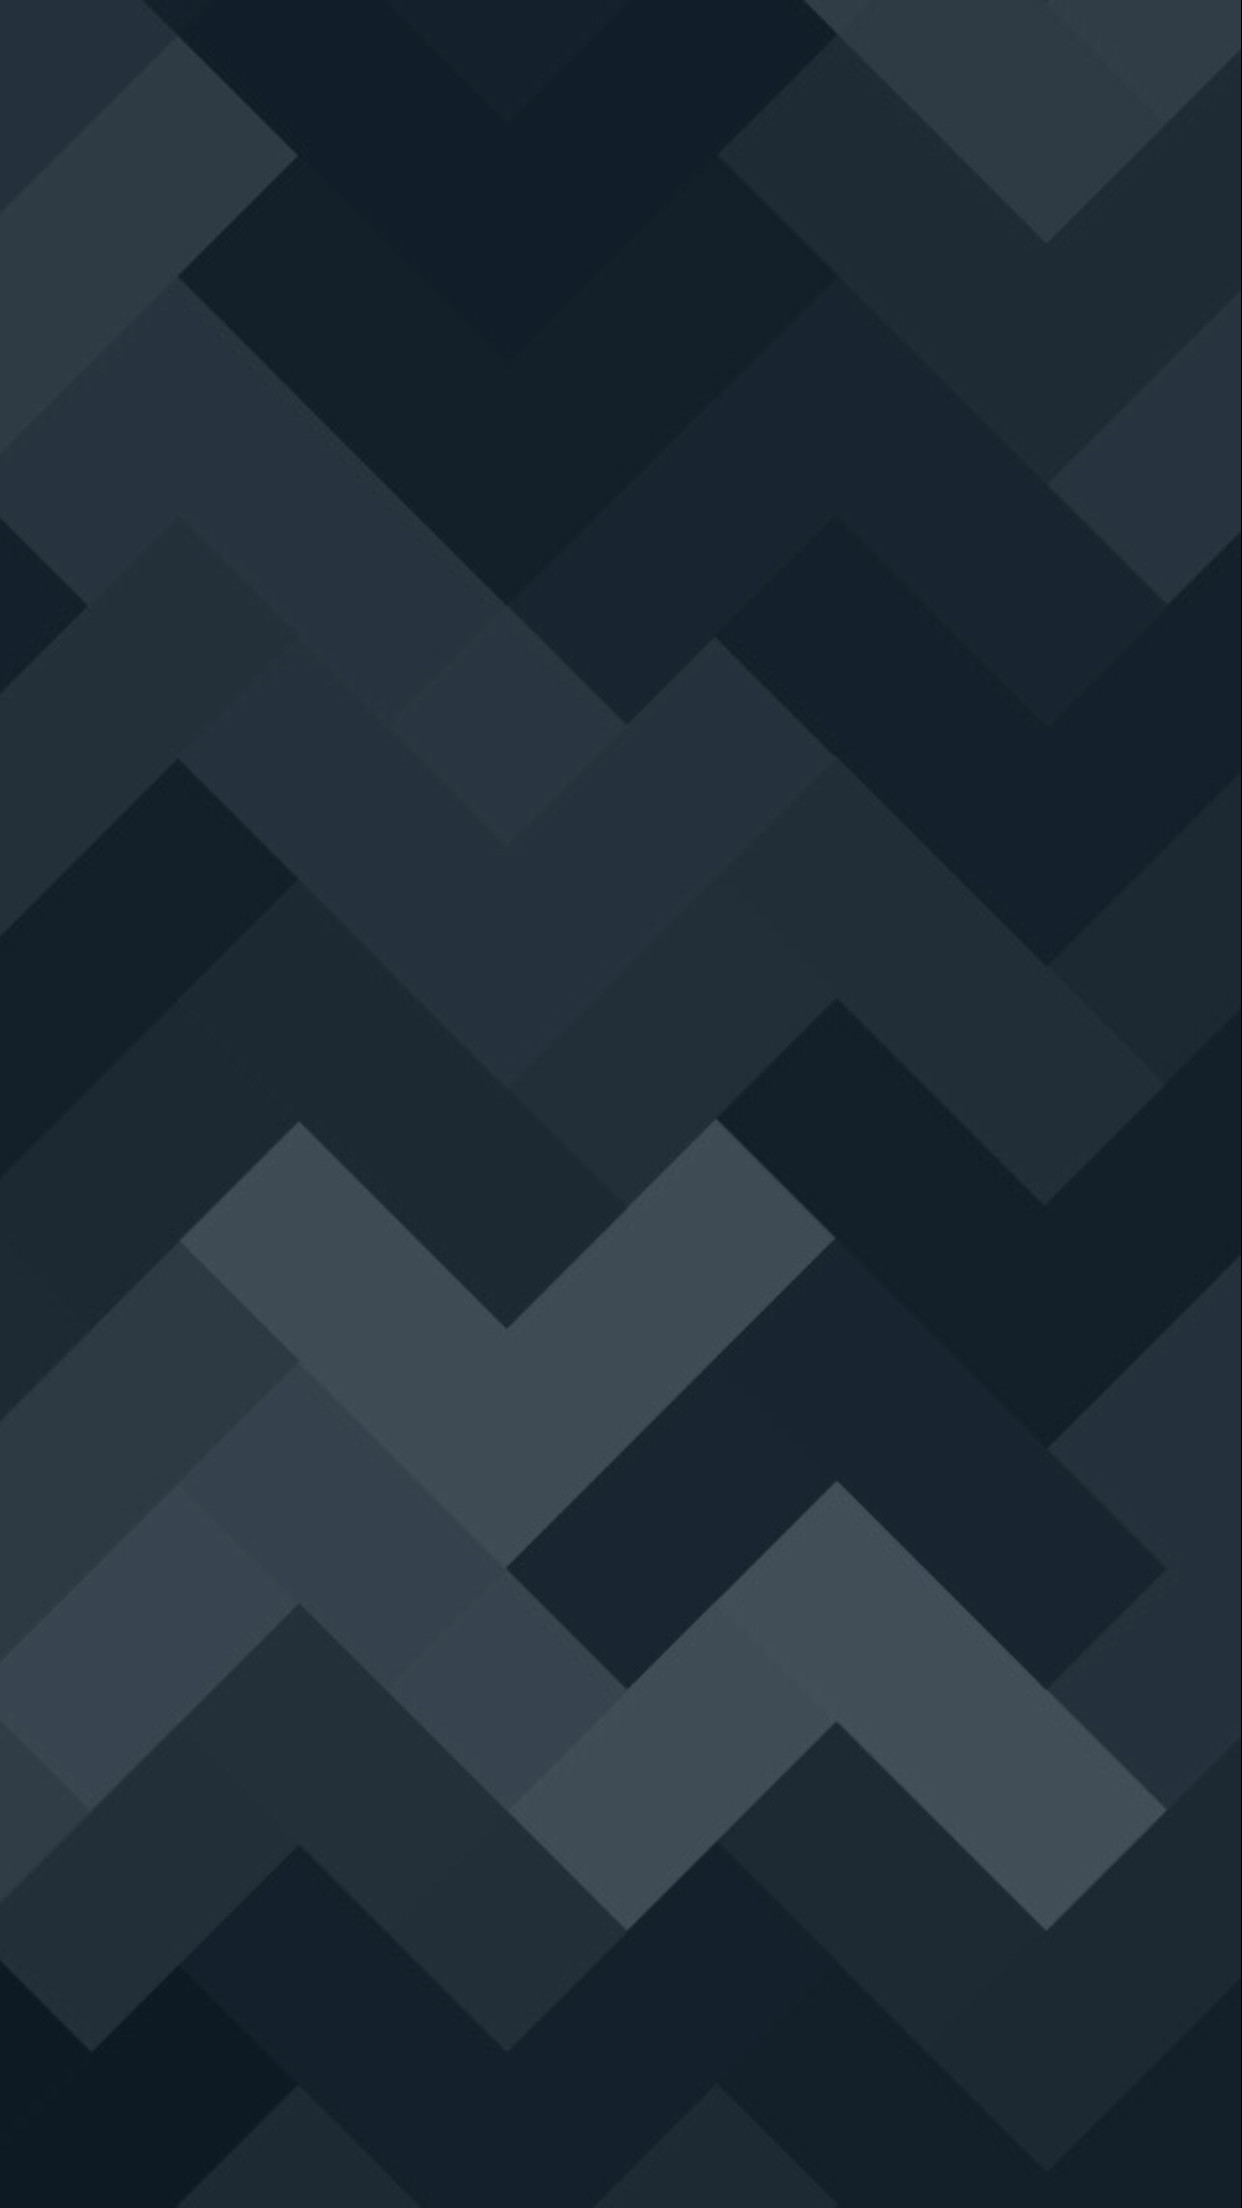 shape wallpaper phone   beautiful collection of geometric wallpapers for  iPhone